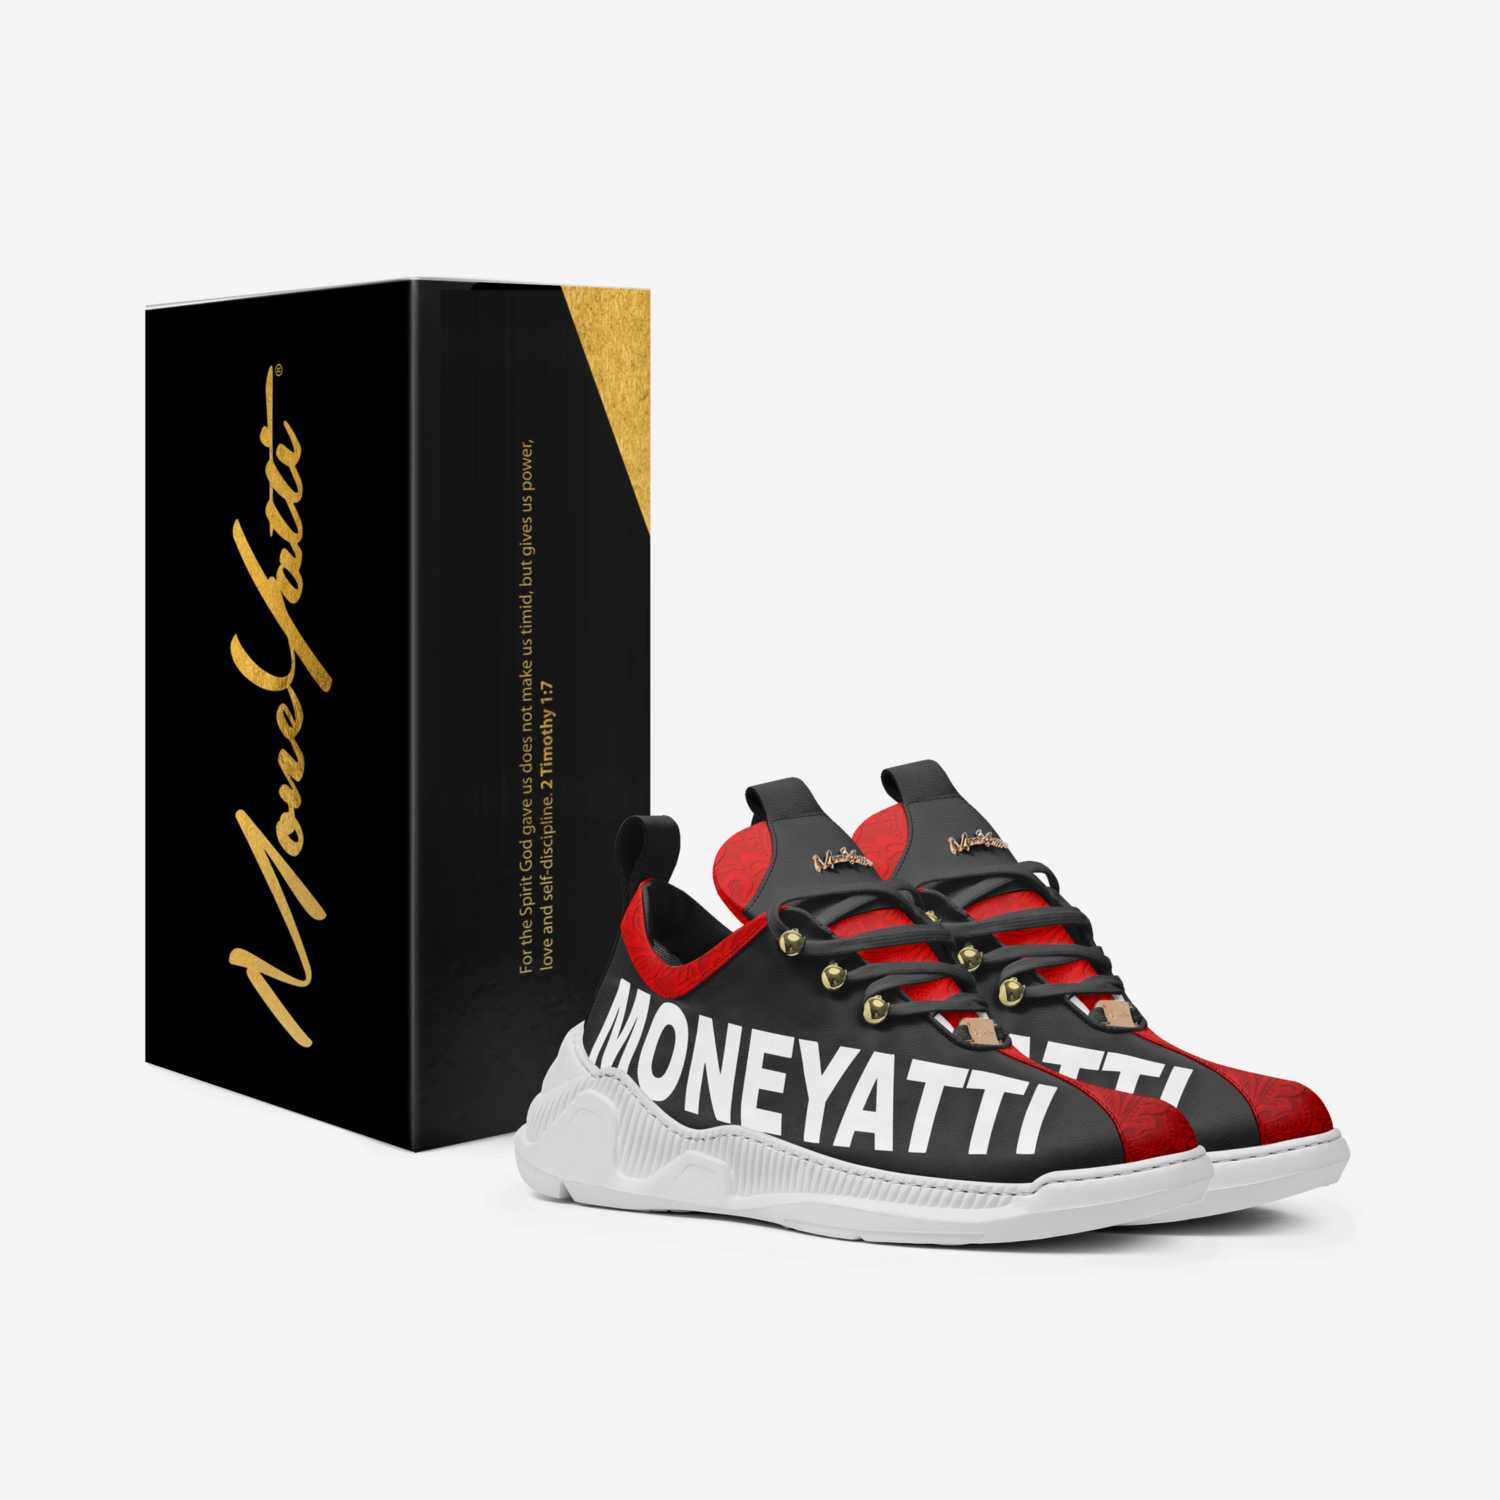 Sig02 custom made in Italy shoes by Moneyatti Brand | Box view